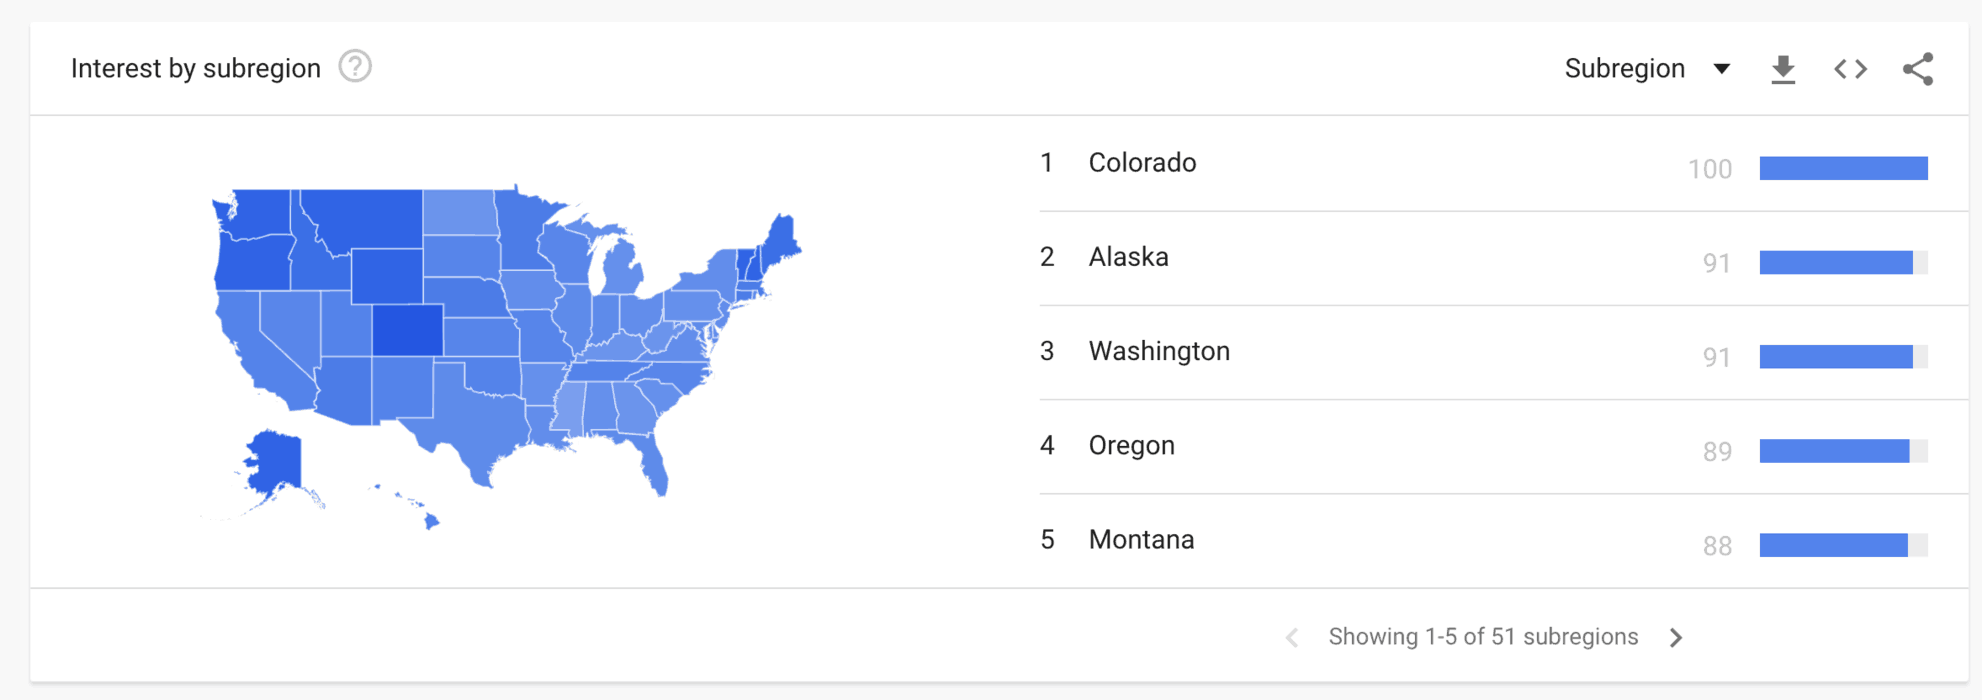 Google Trends data by subregions